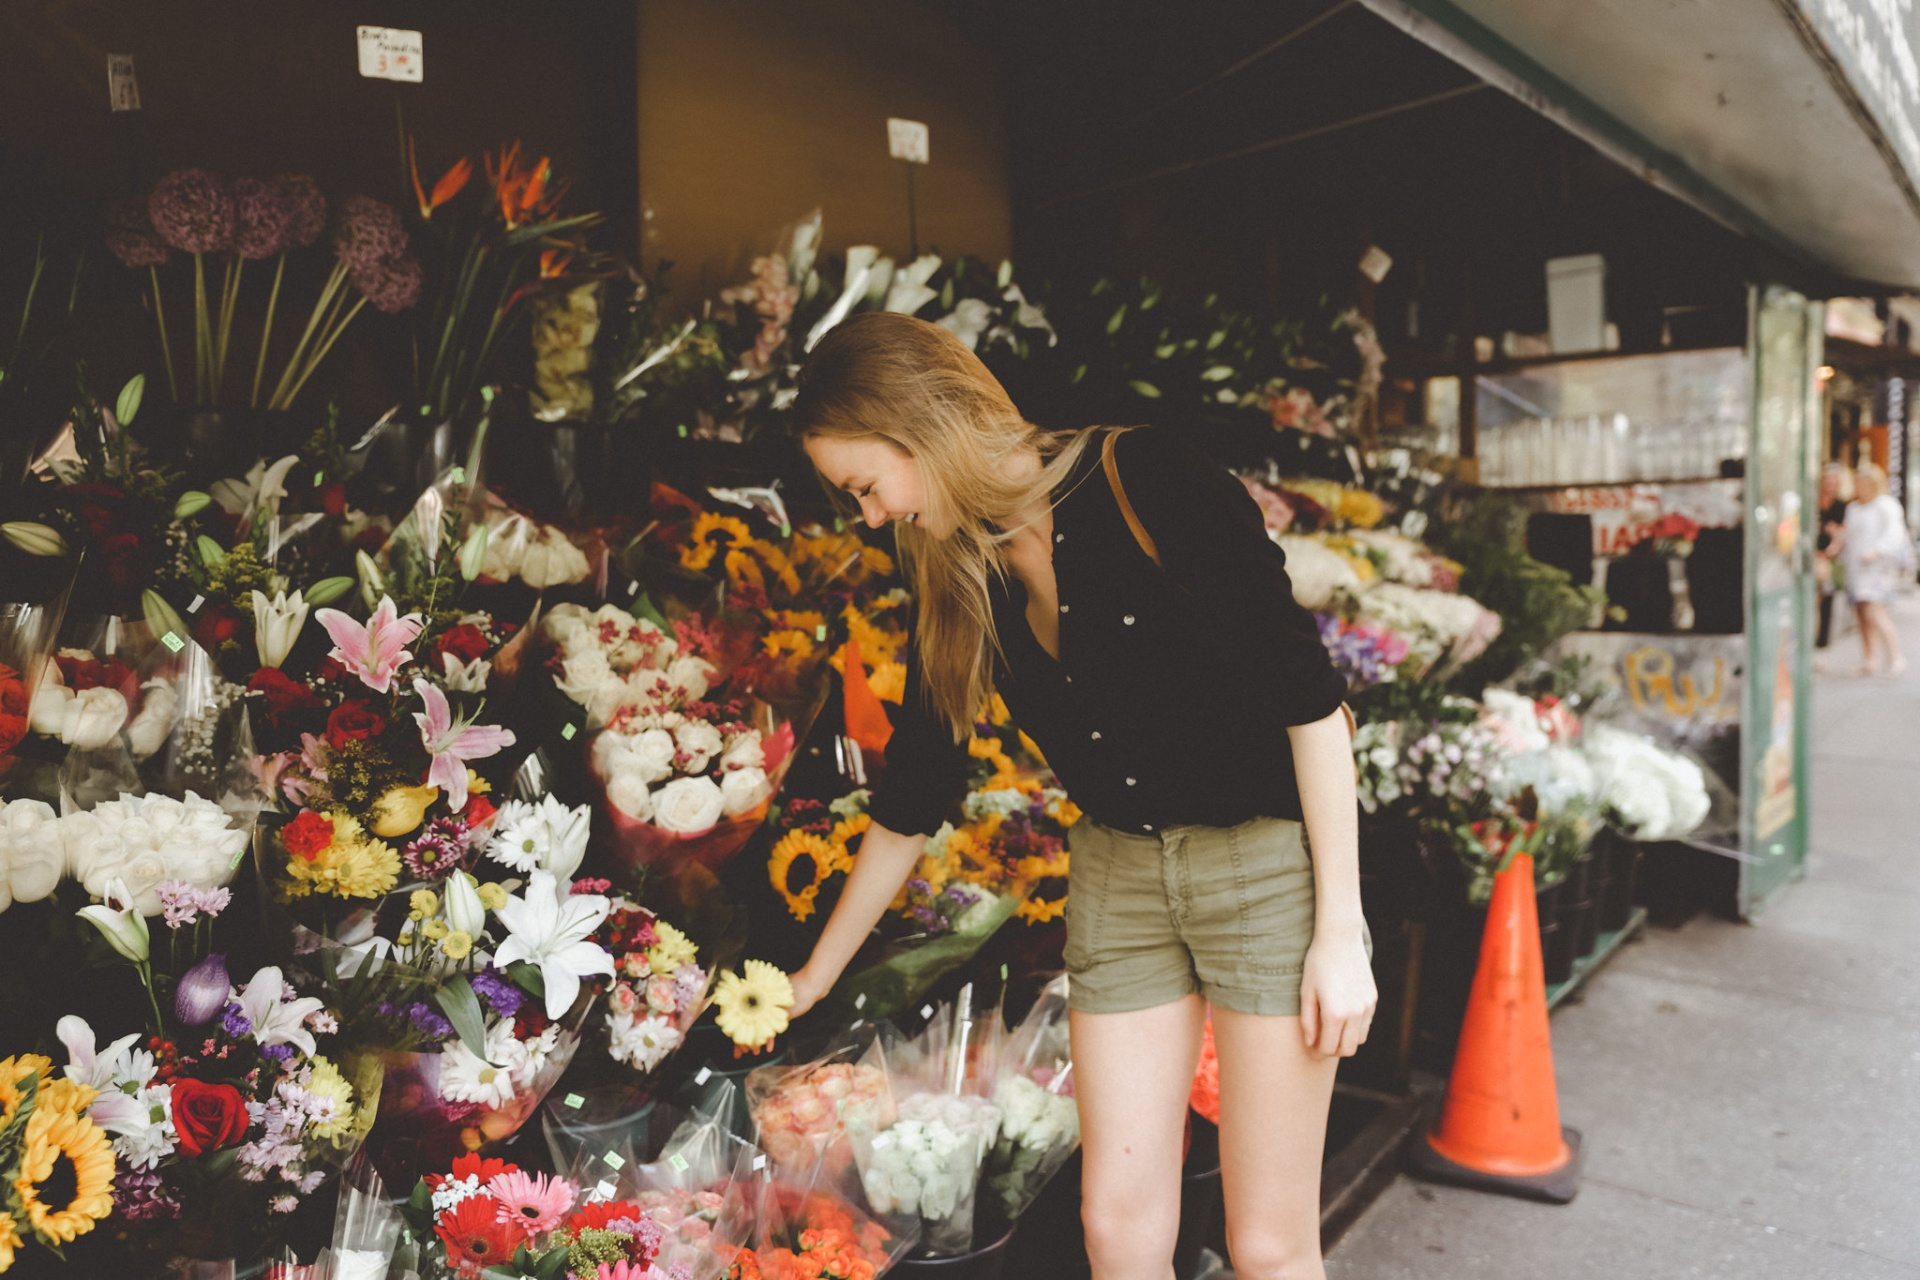 25 Valuable Truths You'll Learn About Yourself When You Silence The World Around You